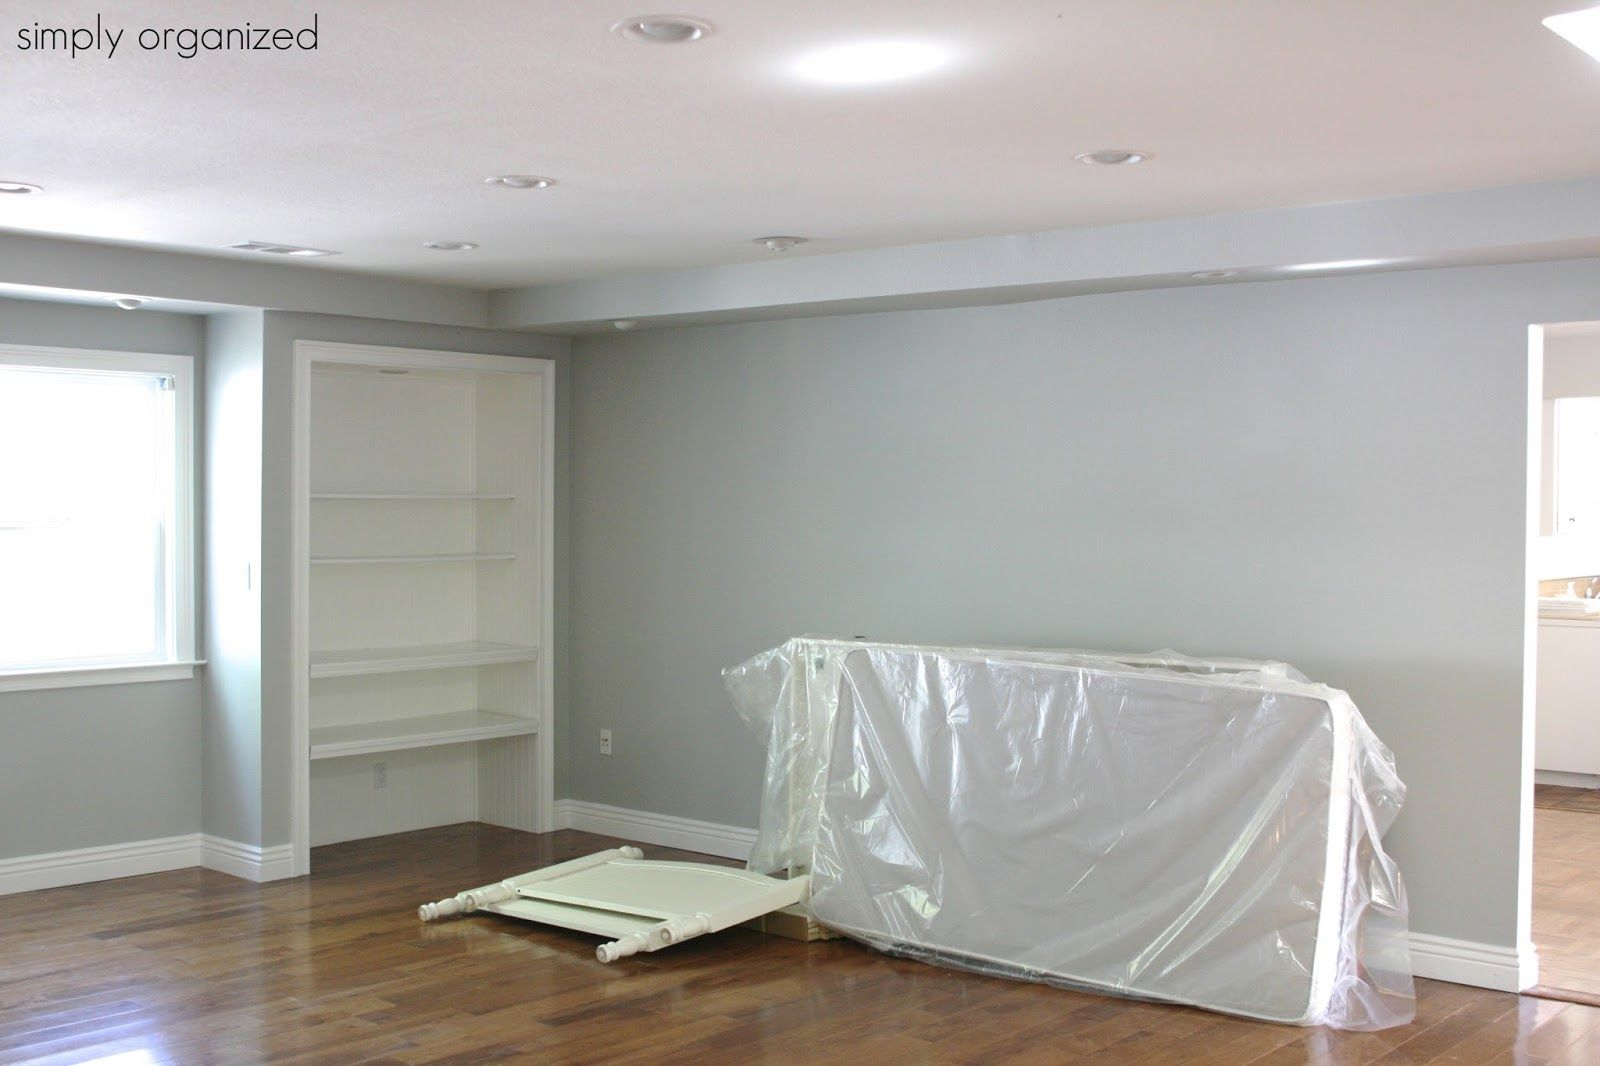 My Home Interior Paint color palate | Color palate, Paint finishes ...